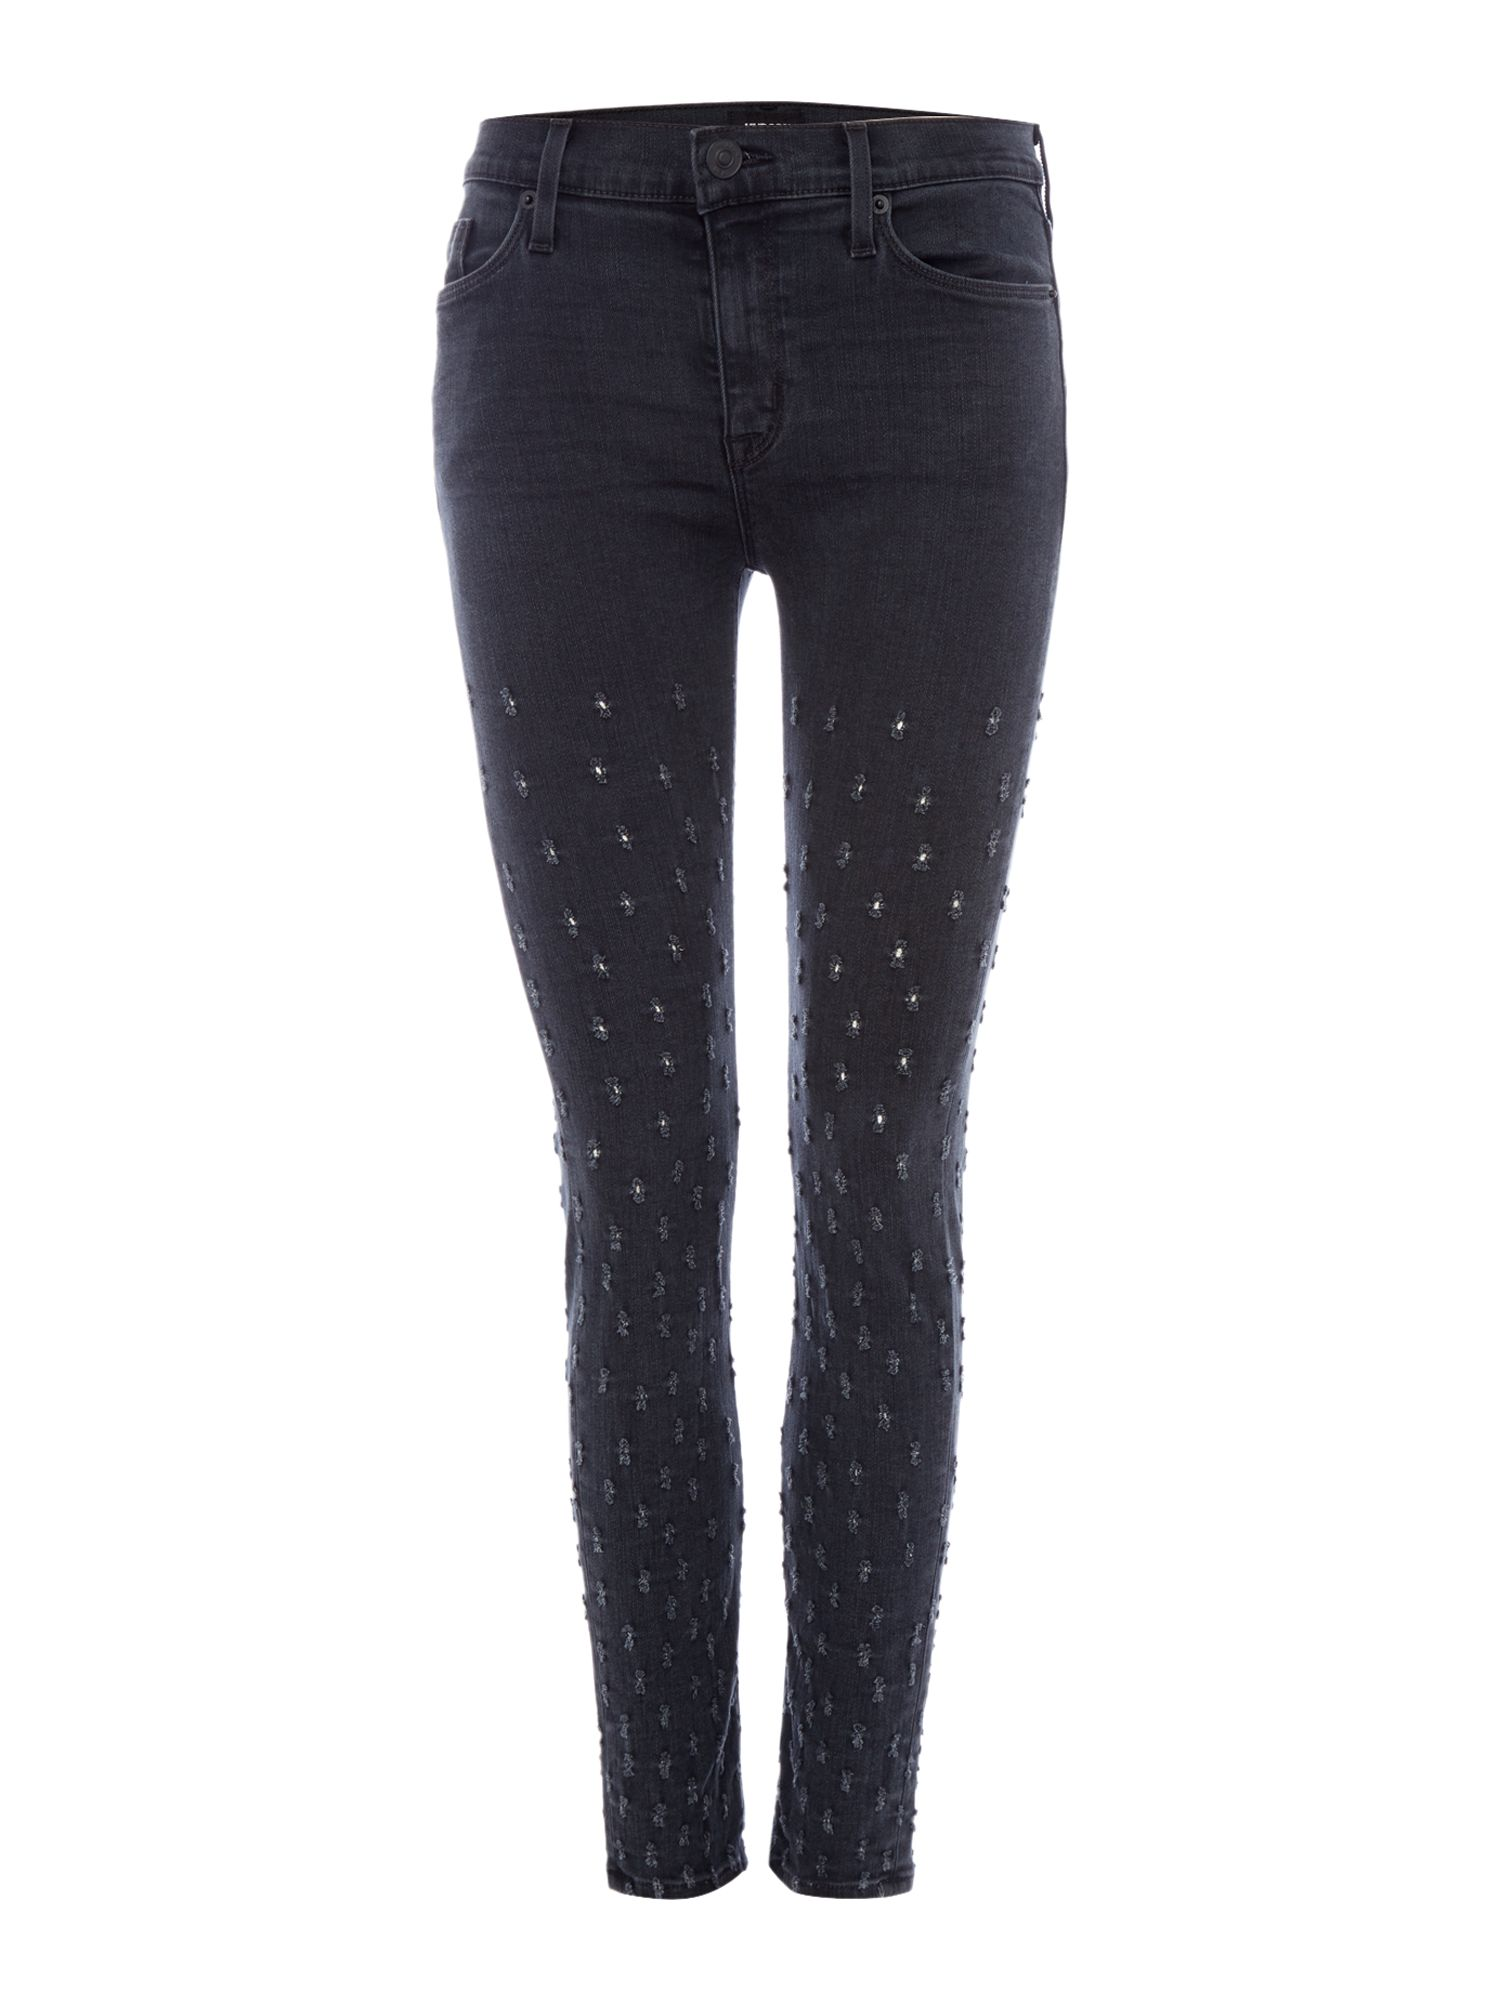 Hudson Jeans Nico midrise ankle superskinny in dissension Black